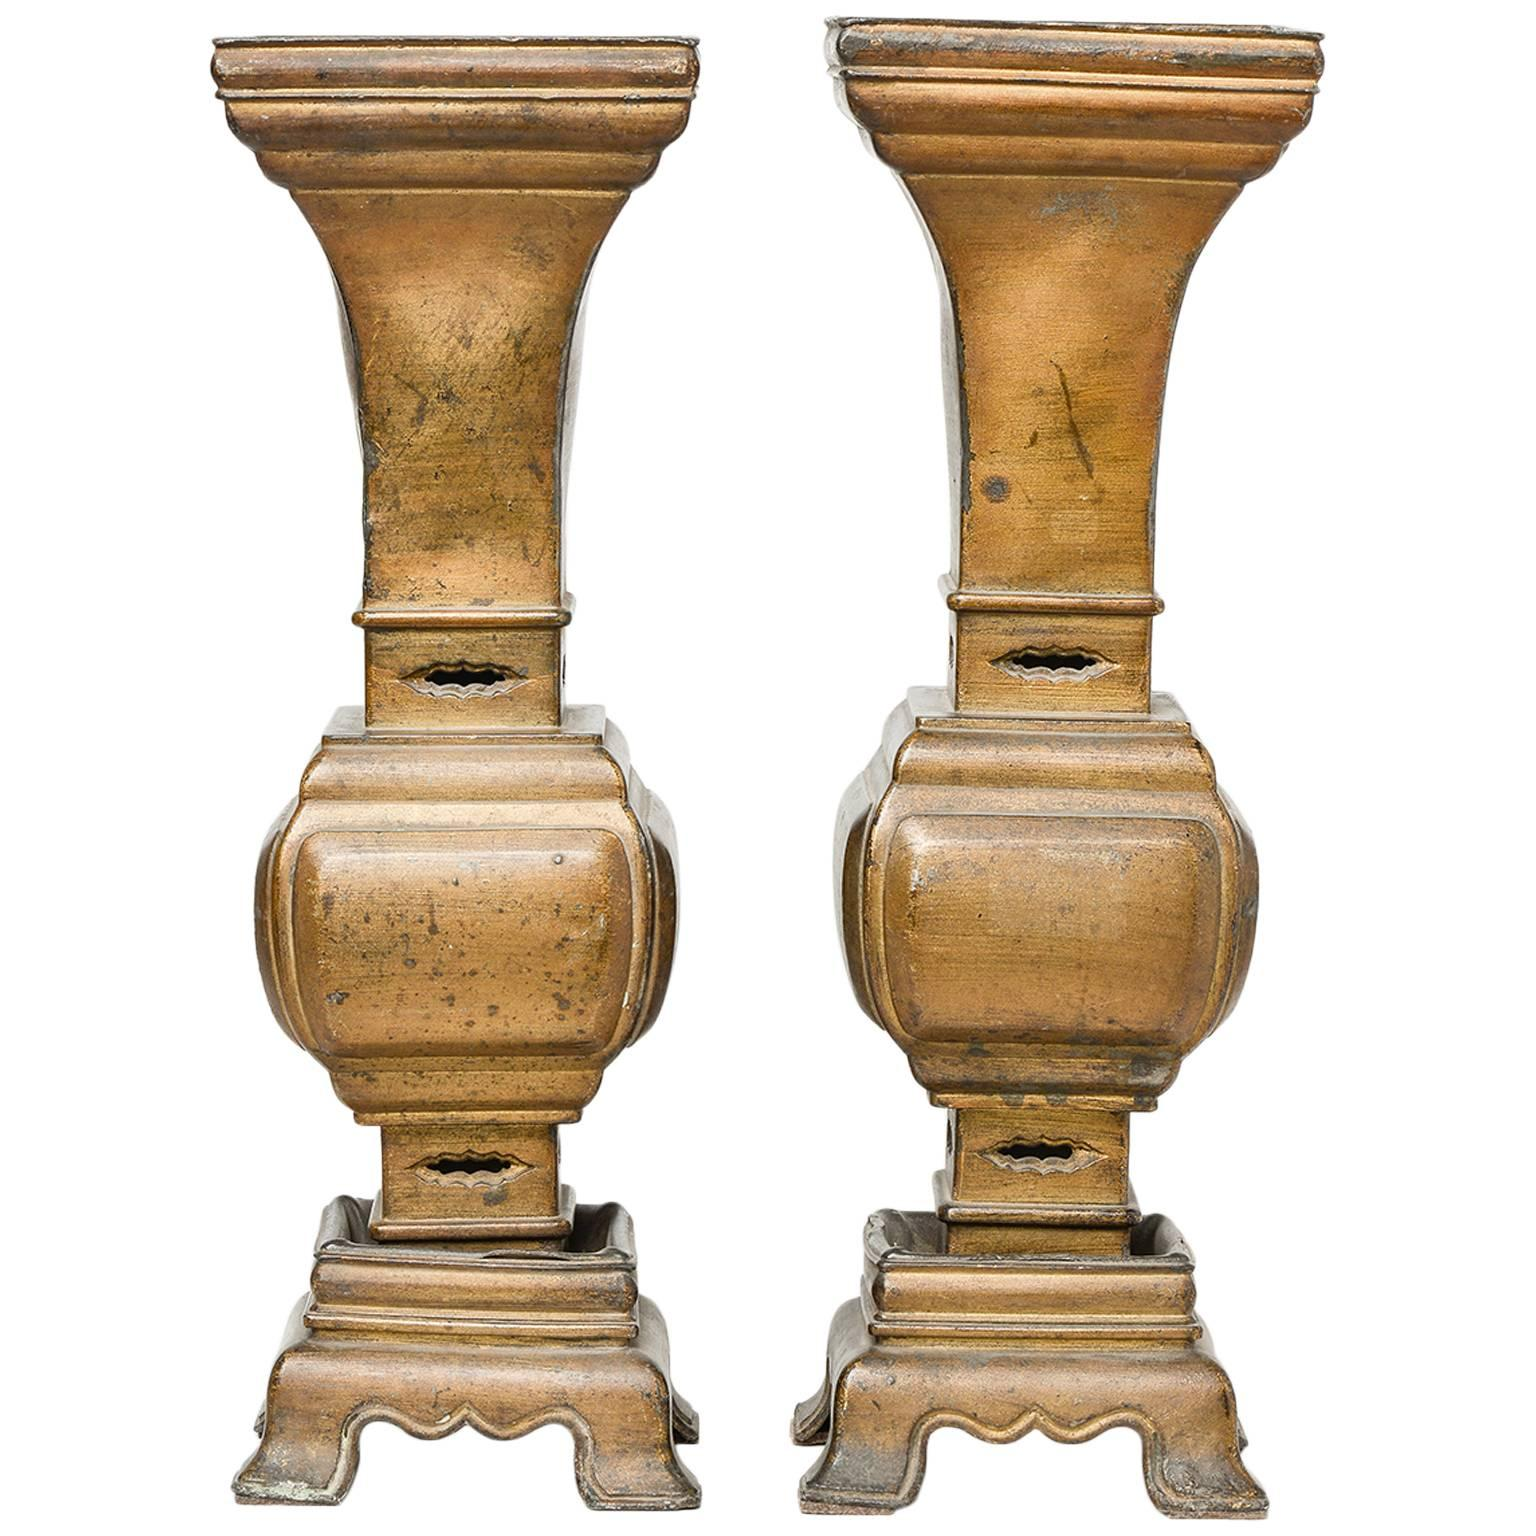 Bronze Chinese Incense Burners or Table Lamps Bases or Vases